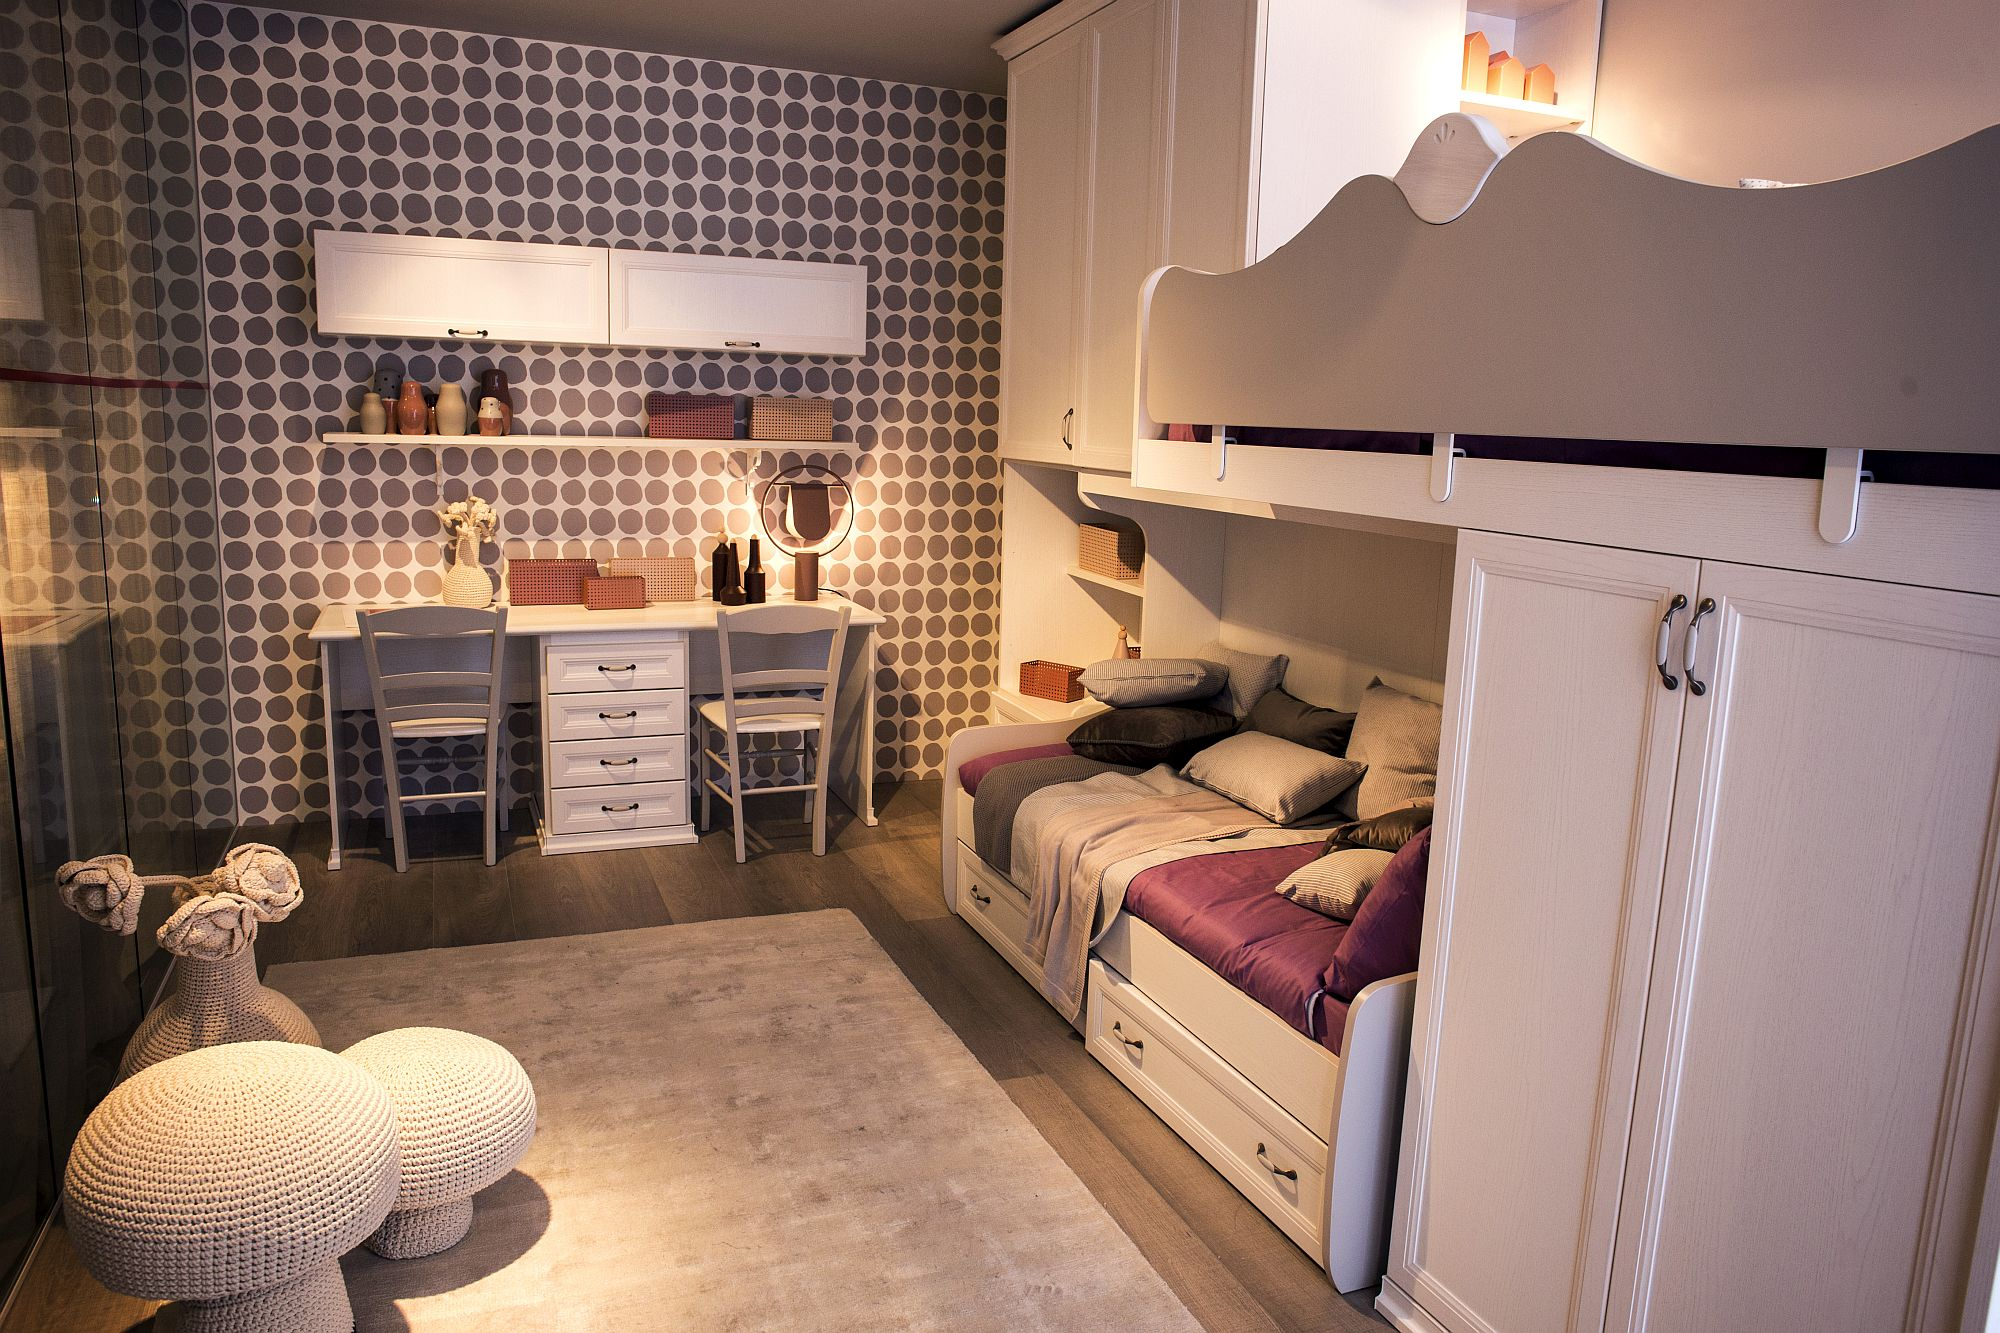 Bunk bed wall in the kids' room frees up space for other decor